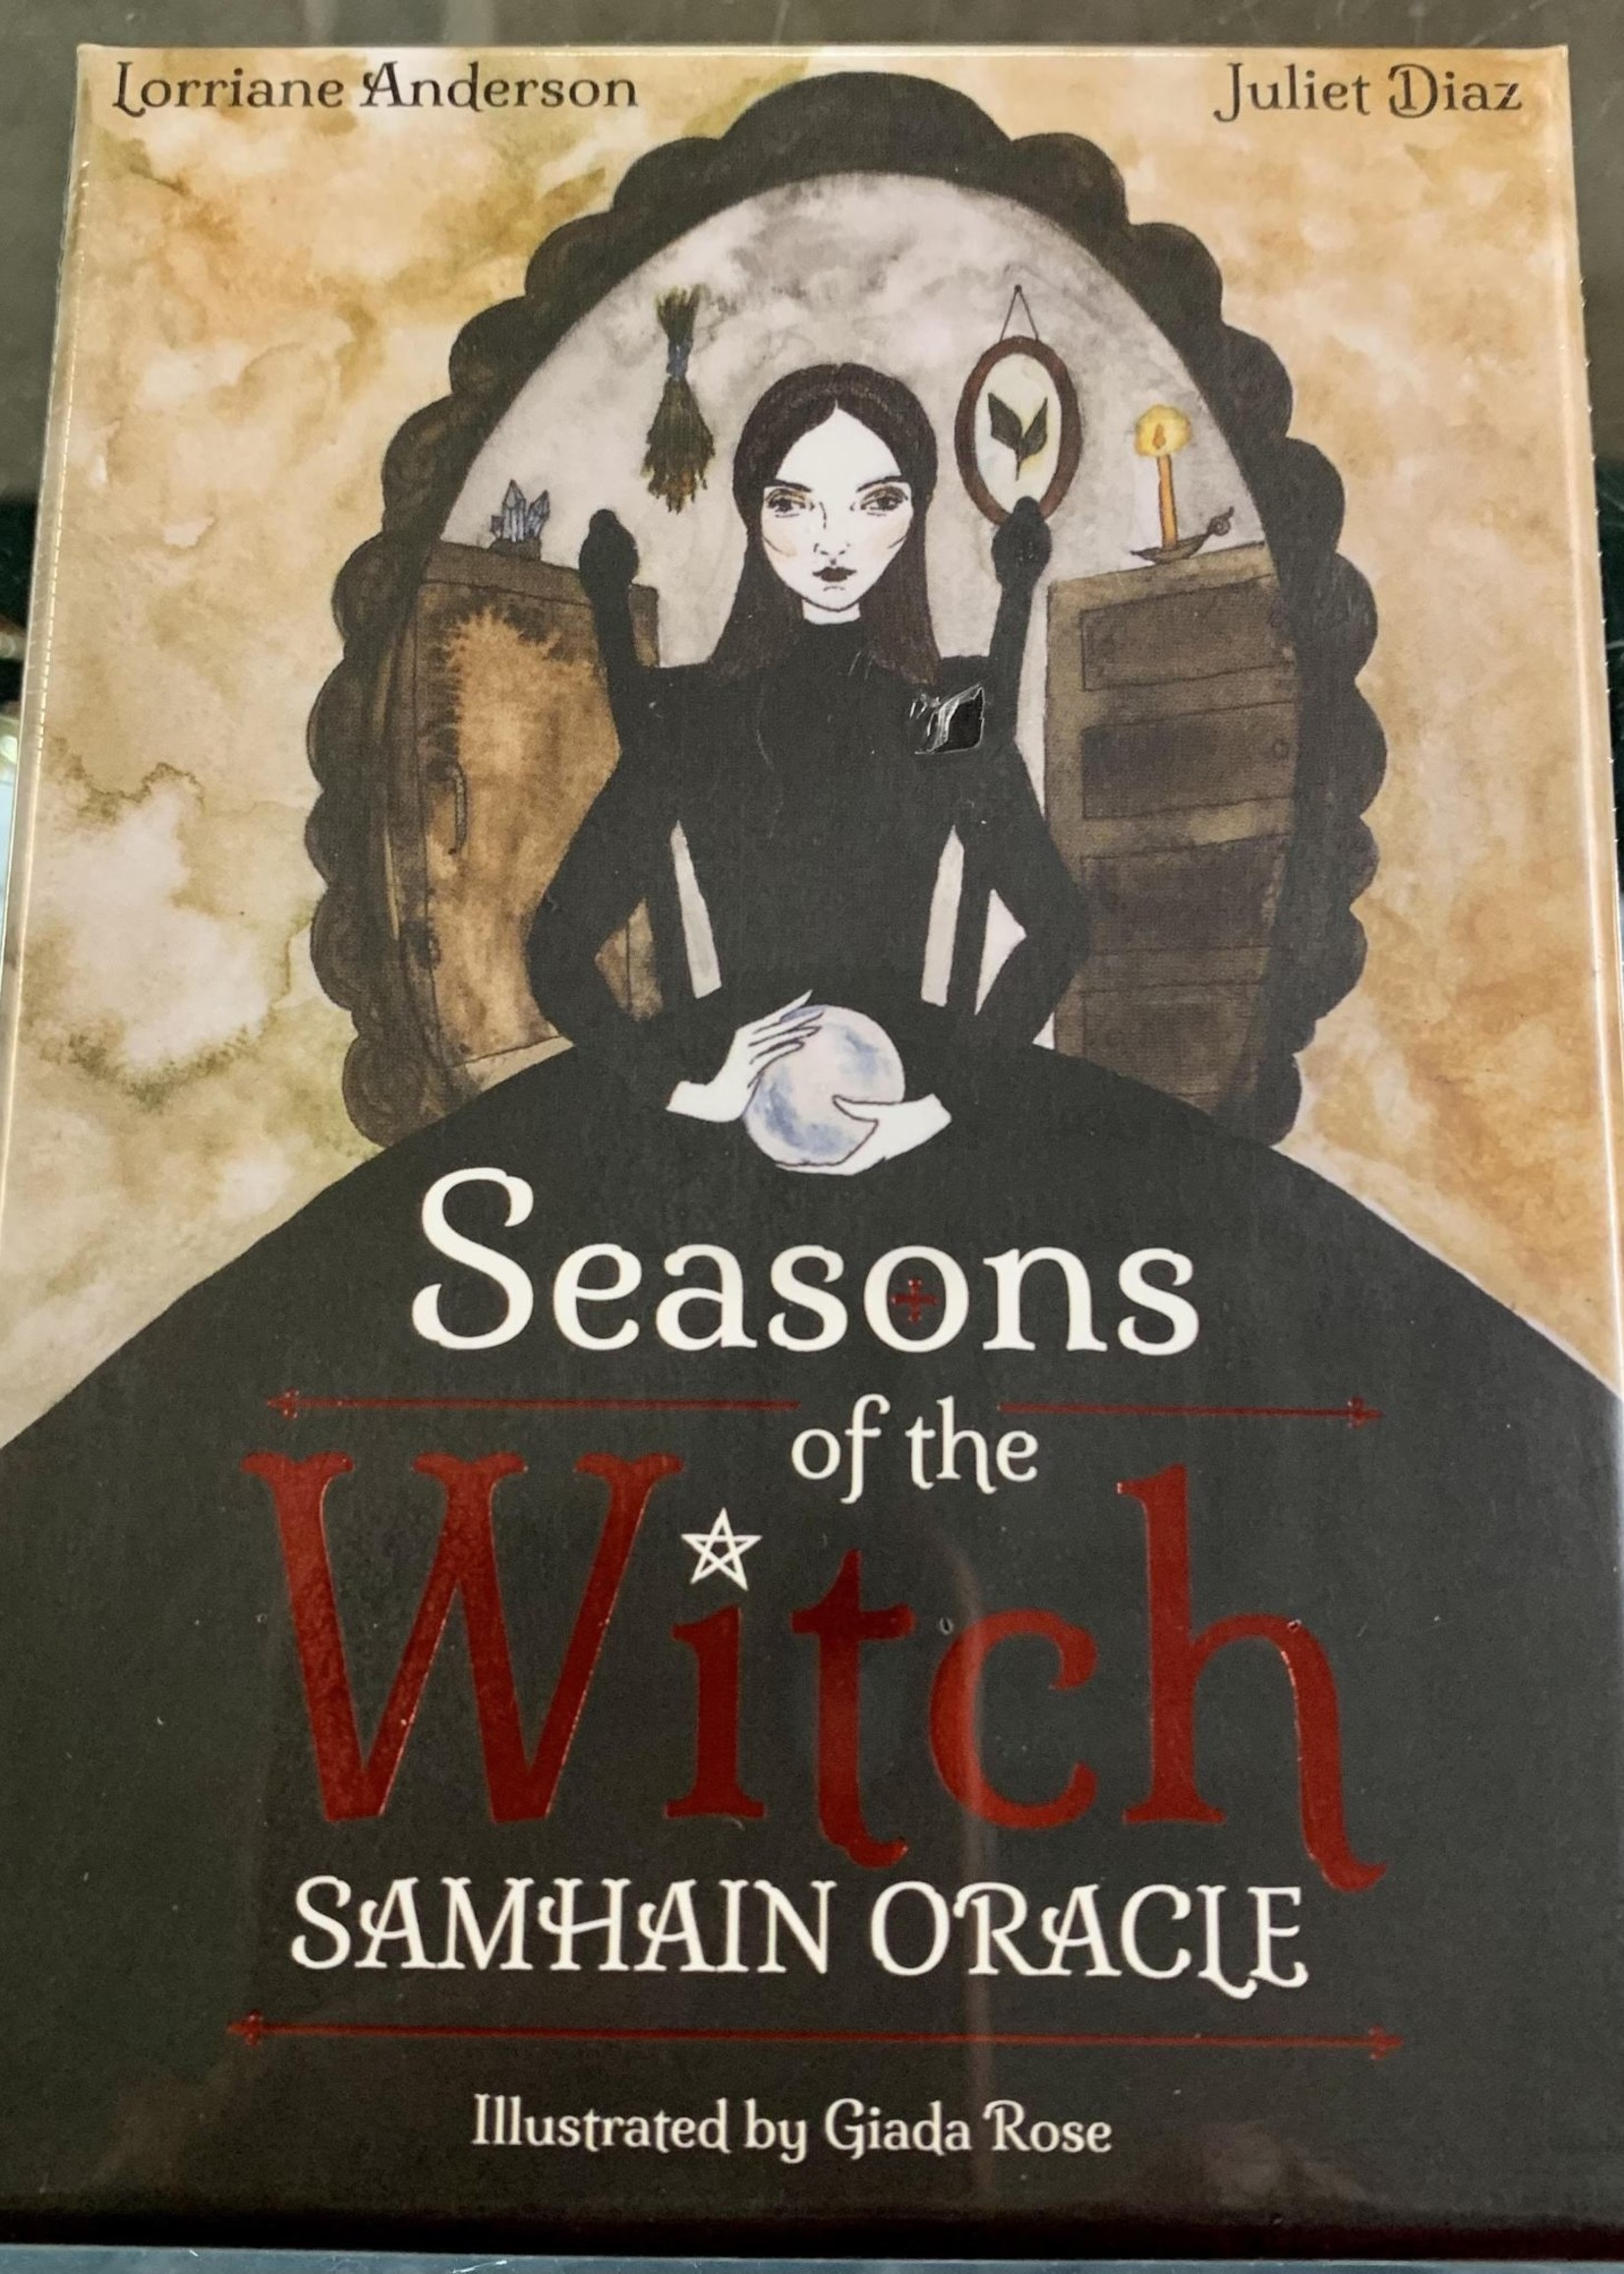 Seasons of the Witch: Samhain Oracle Harness the intuitive power of the year's most magical night - Co-Author Lorriane Anderson, Co-Author Juliet Diaz, Illustrator Giada Rose